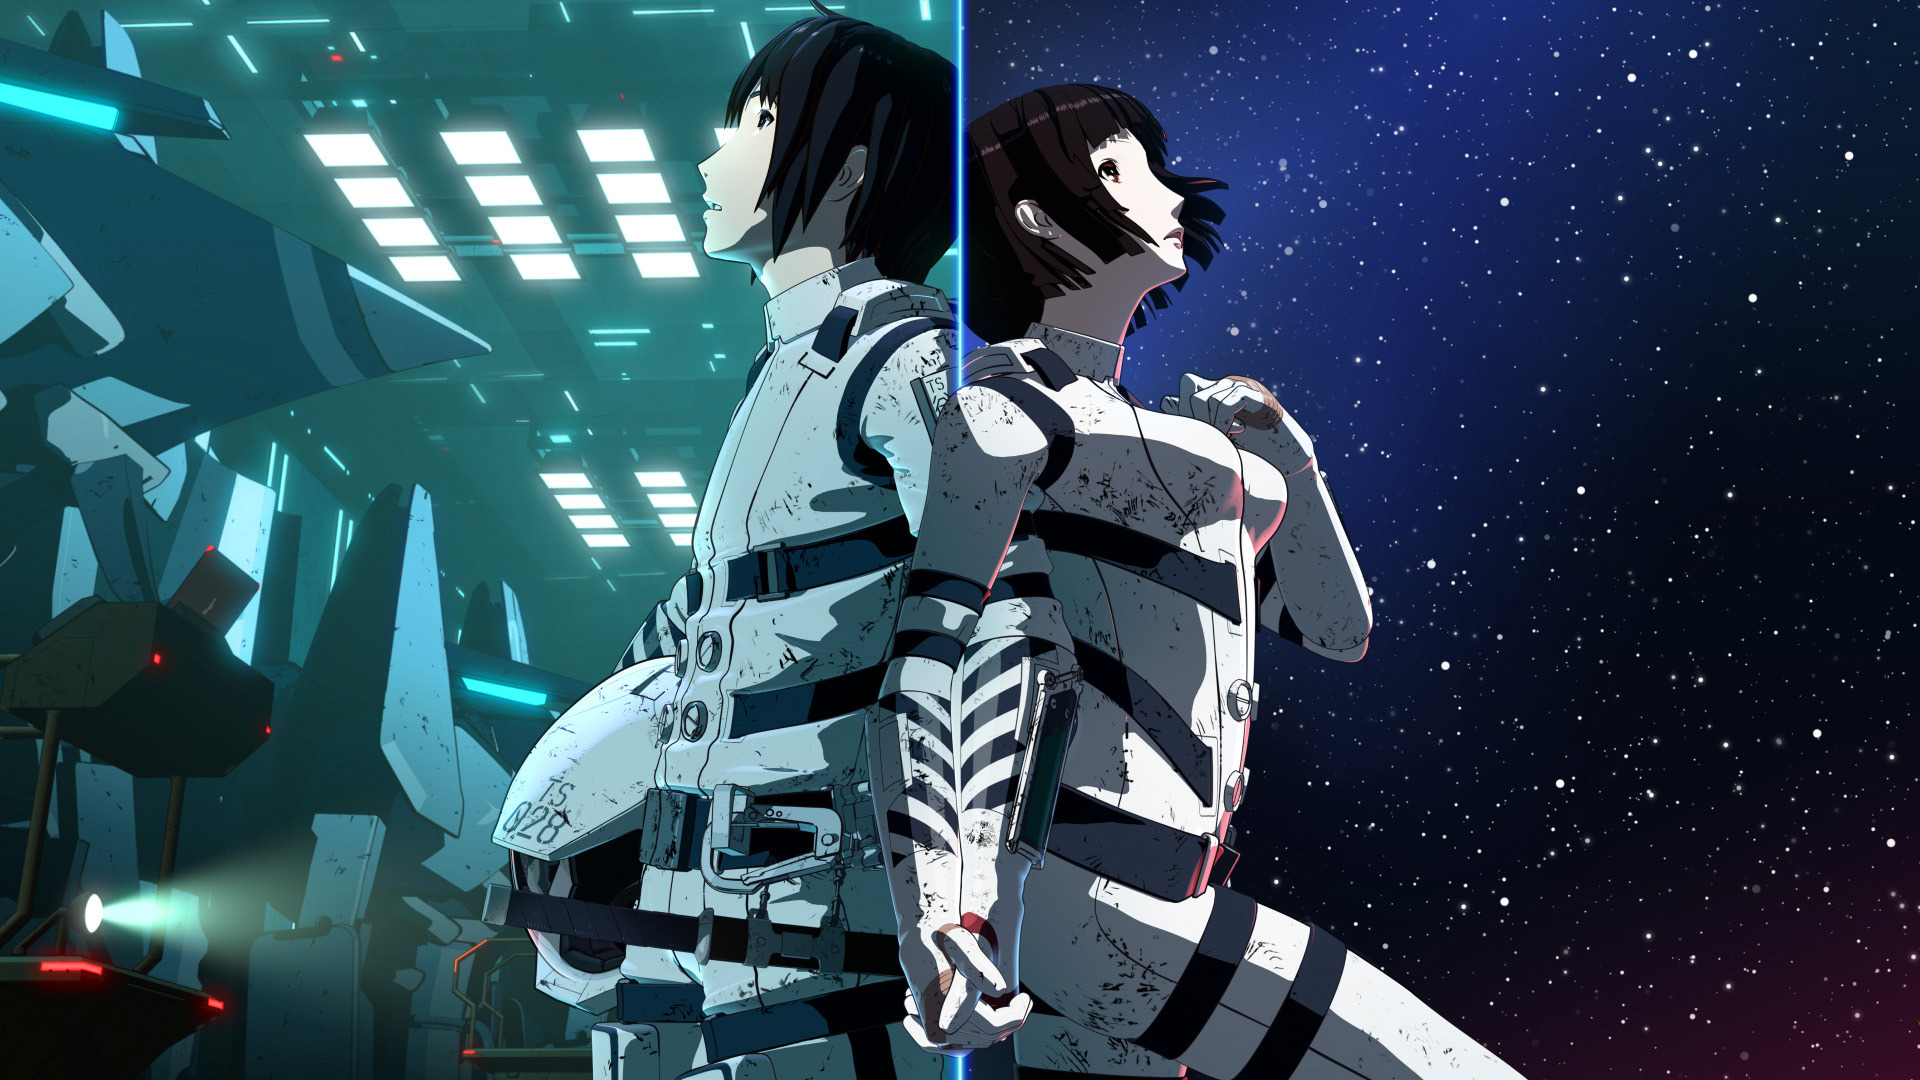 knights of sidonia gauna Book Covers